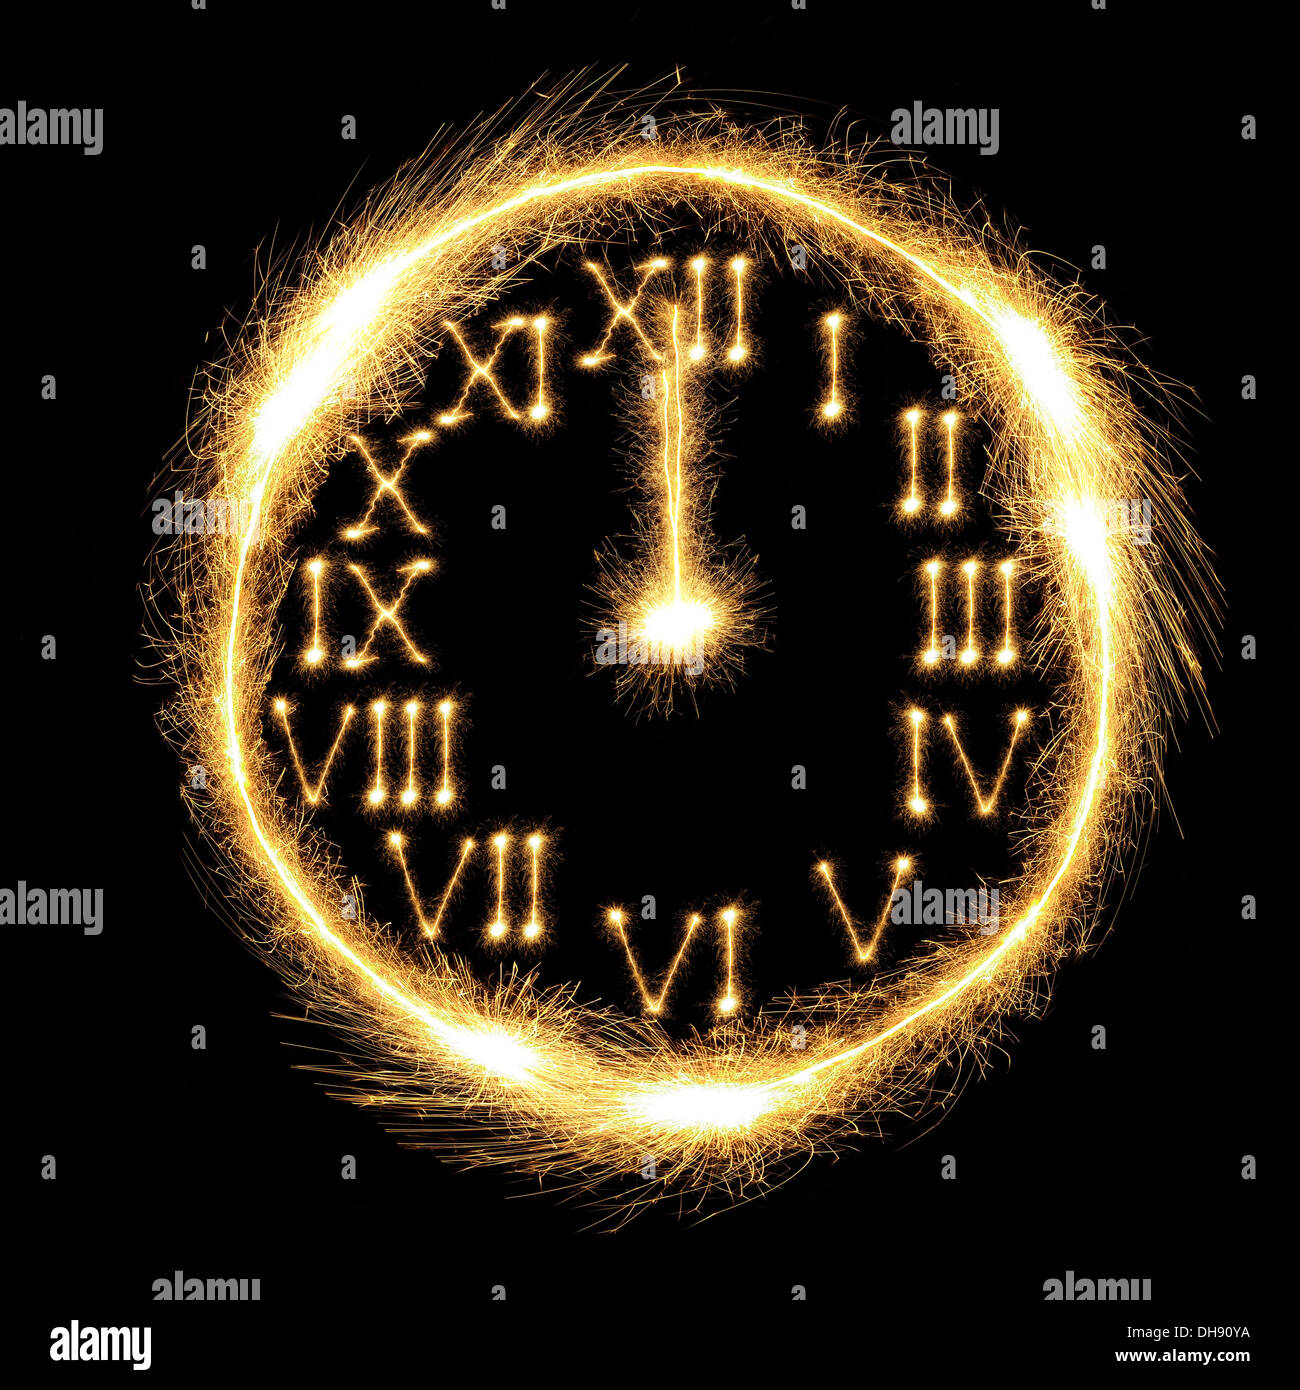 Sparking clock showing almost midnight and the New Year's Day coming - Stock Image